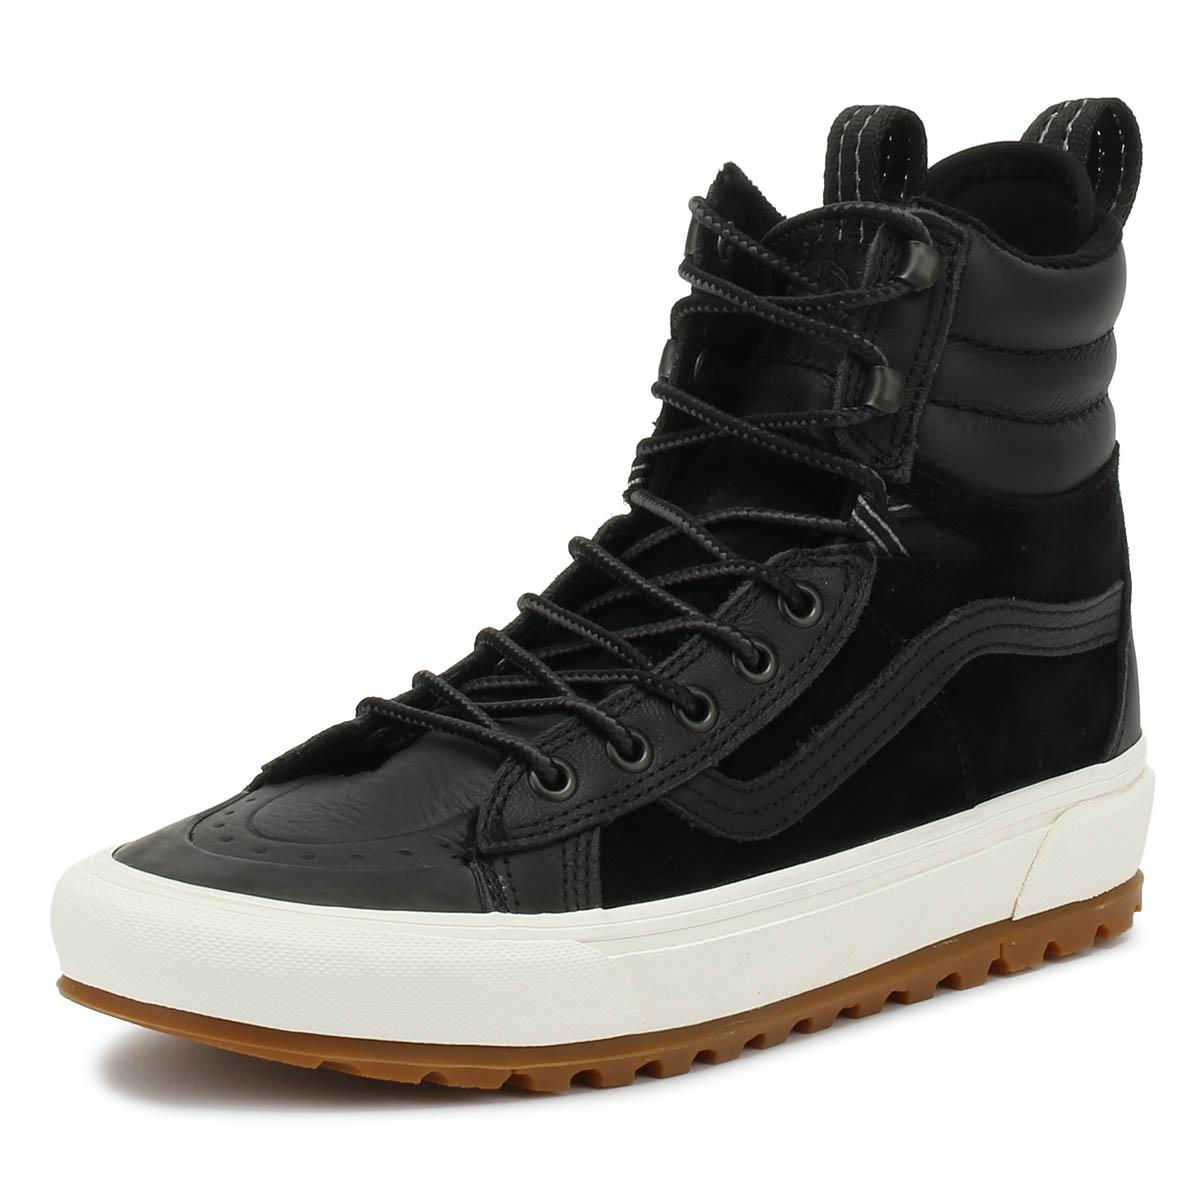 17cee77d04 Vans - Sk8-hi Mte Dx Black Boots for Men - Lyst. View fullscreen